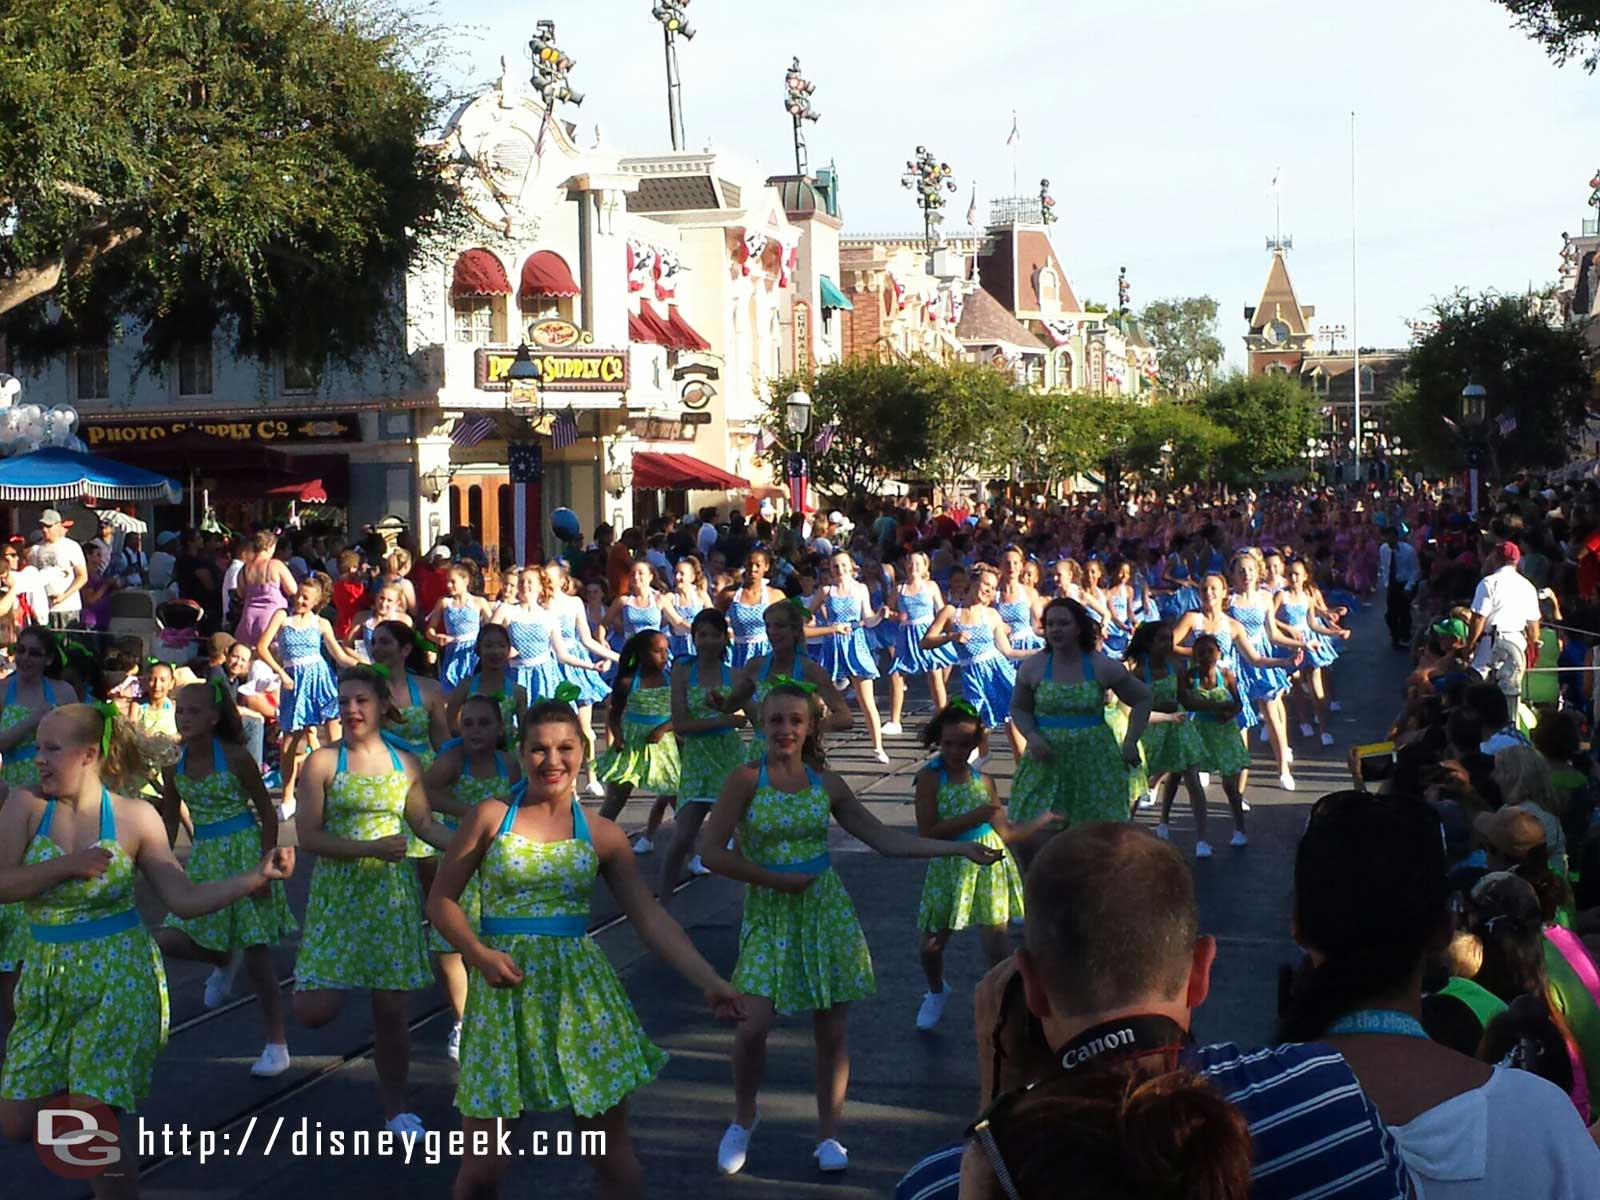 Dance the Magic filling Main Street USA with approx 700 dancers if I heard correctly